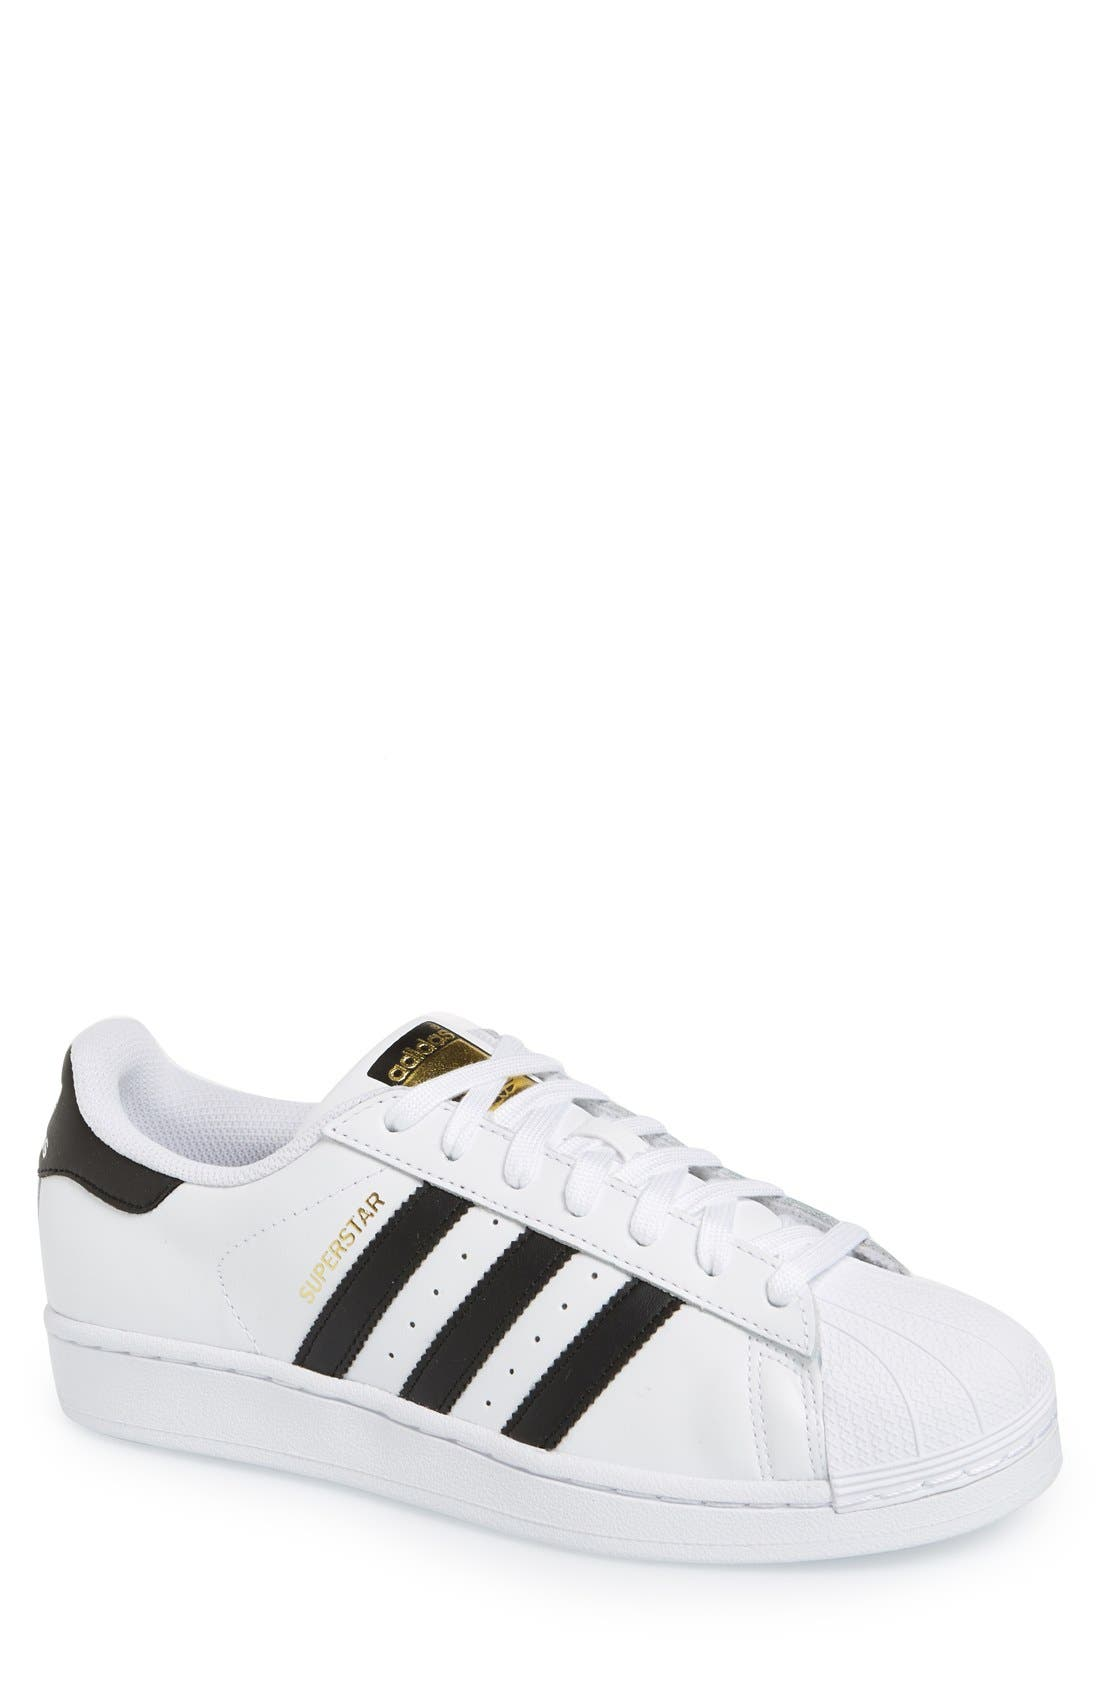 Main Image - adidas Superstar Foundation Sneaker